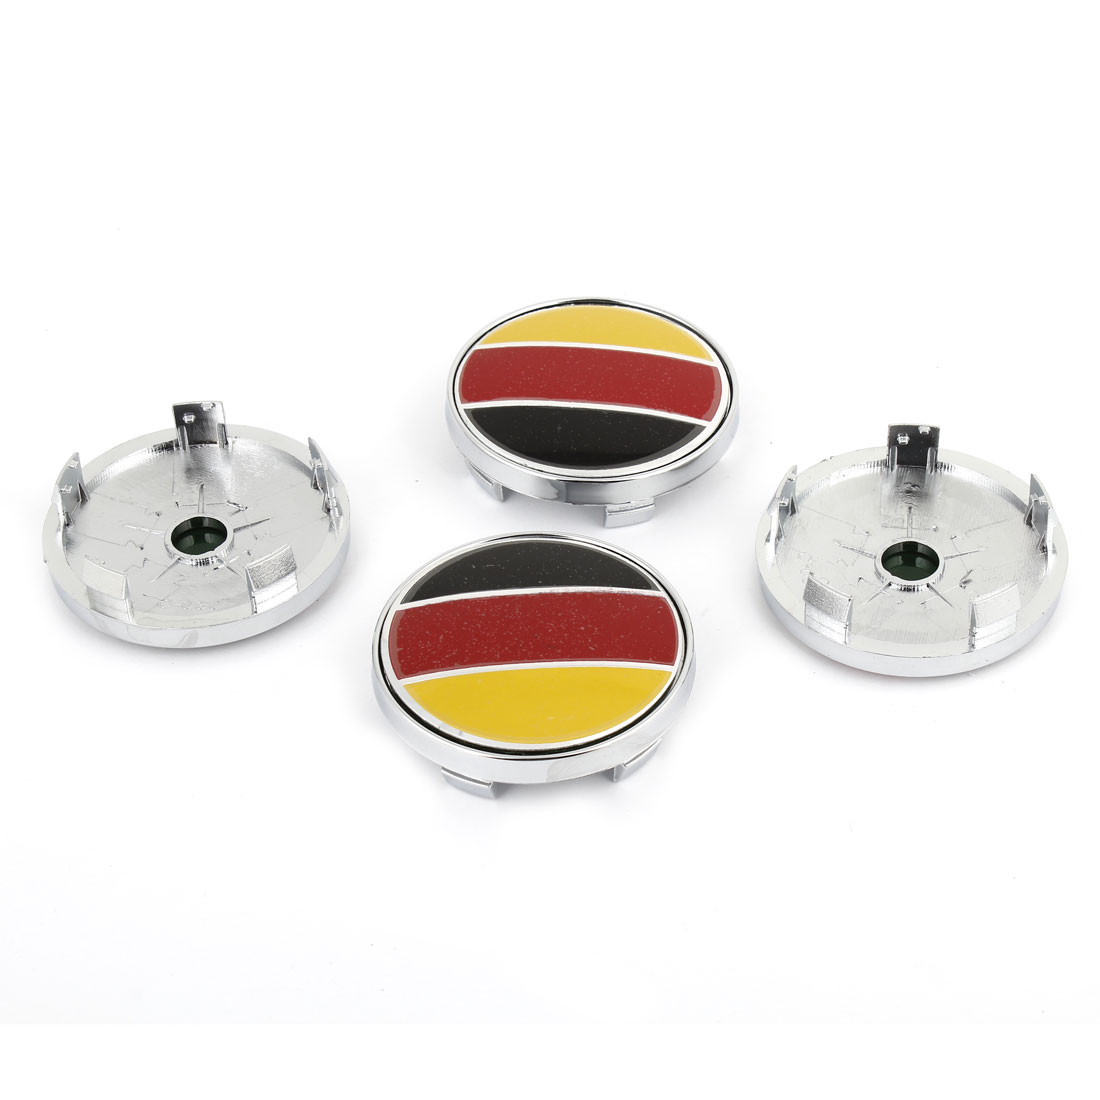 4 Pcs 60mm Dia GER Flag Pattern Plastic Wheel Covers for Vehicles Car